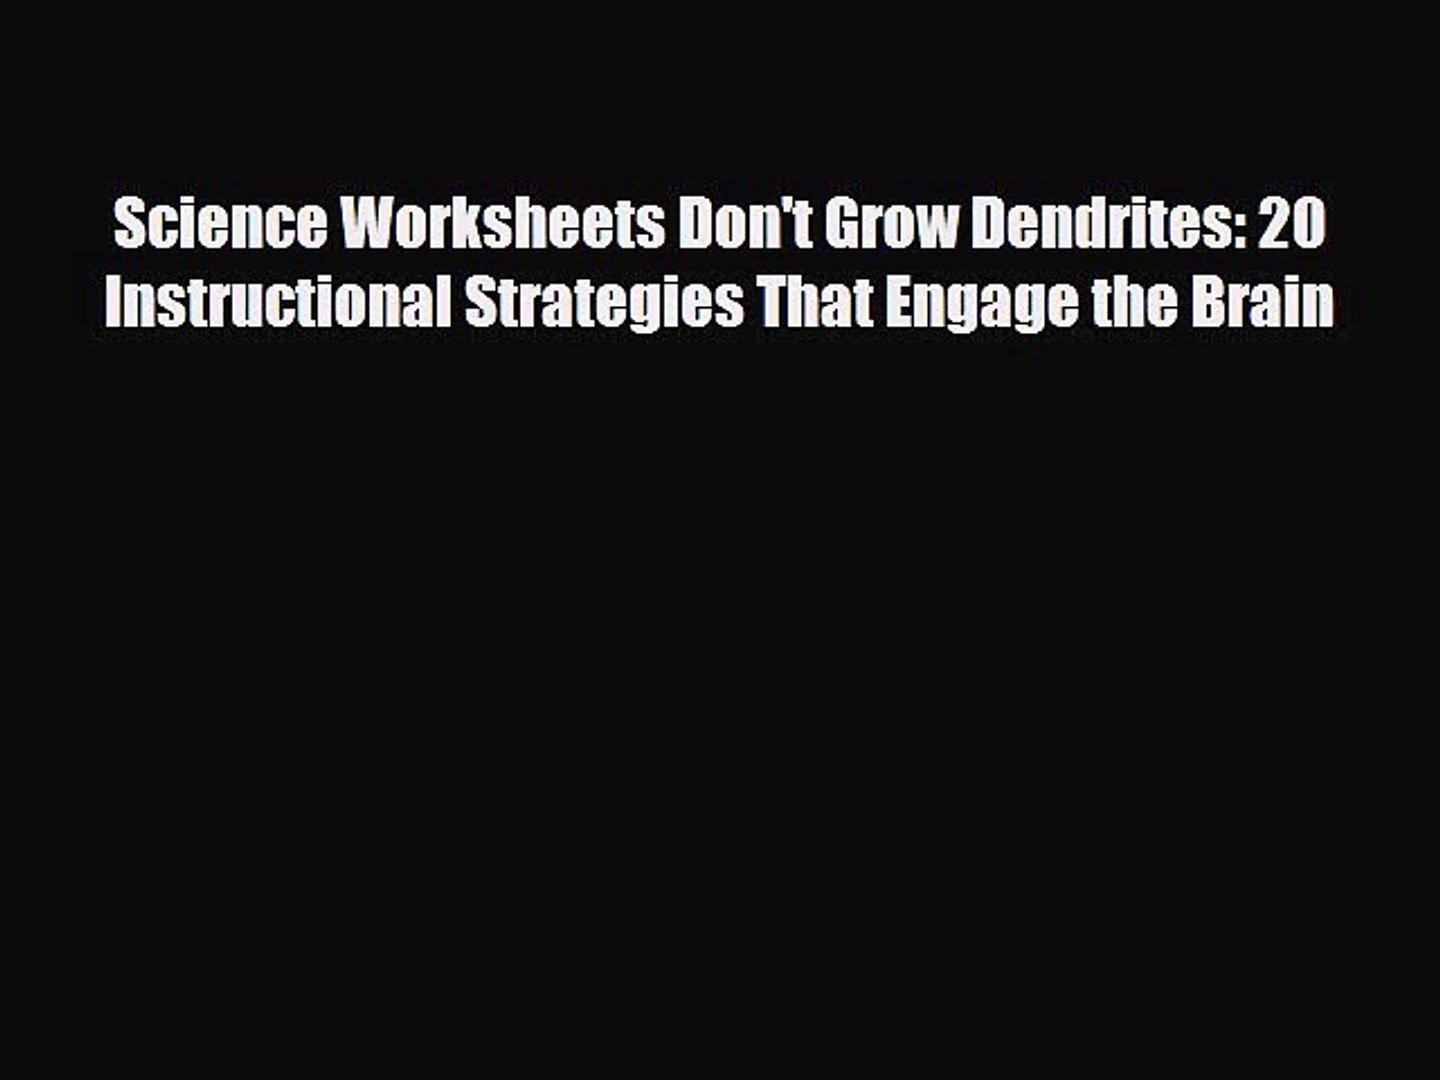 Pdf Download Science Worksheets Don't Grow Dendrites 20 Together With Worksheets Don T Grow Dendrites Pdf